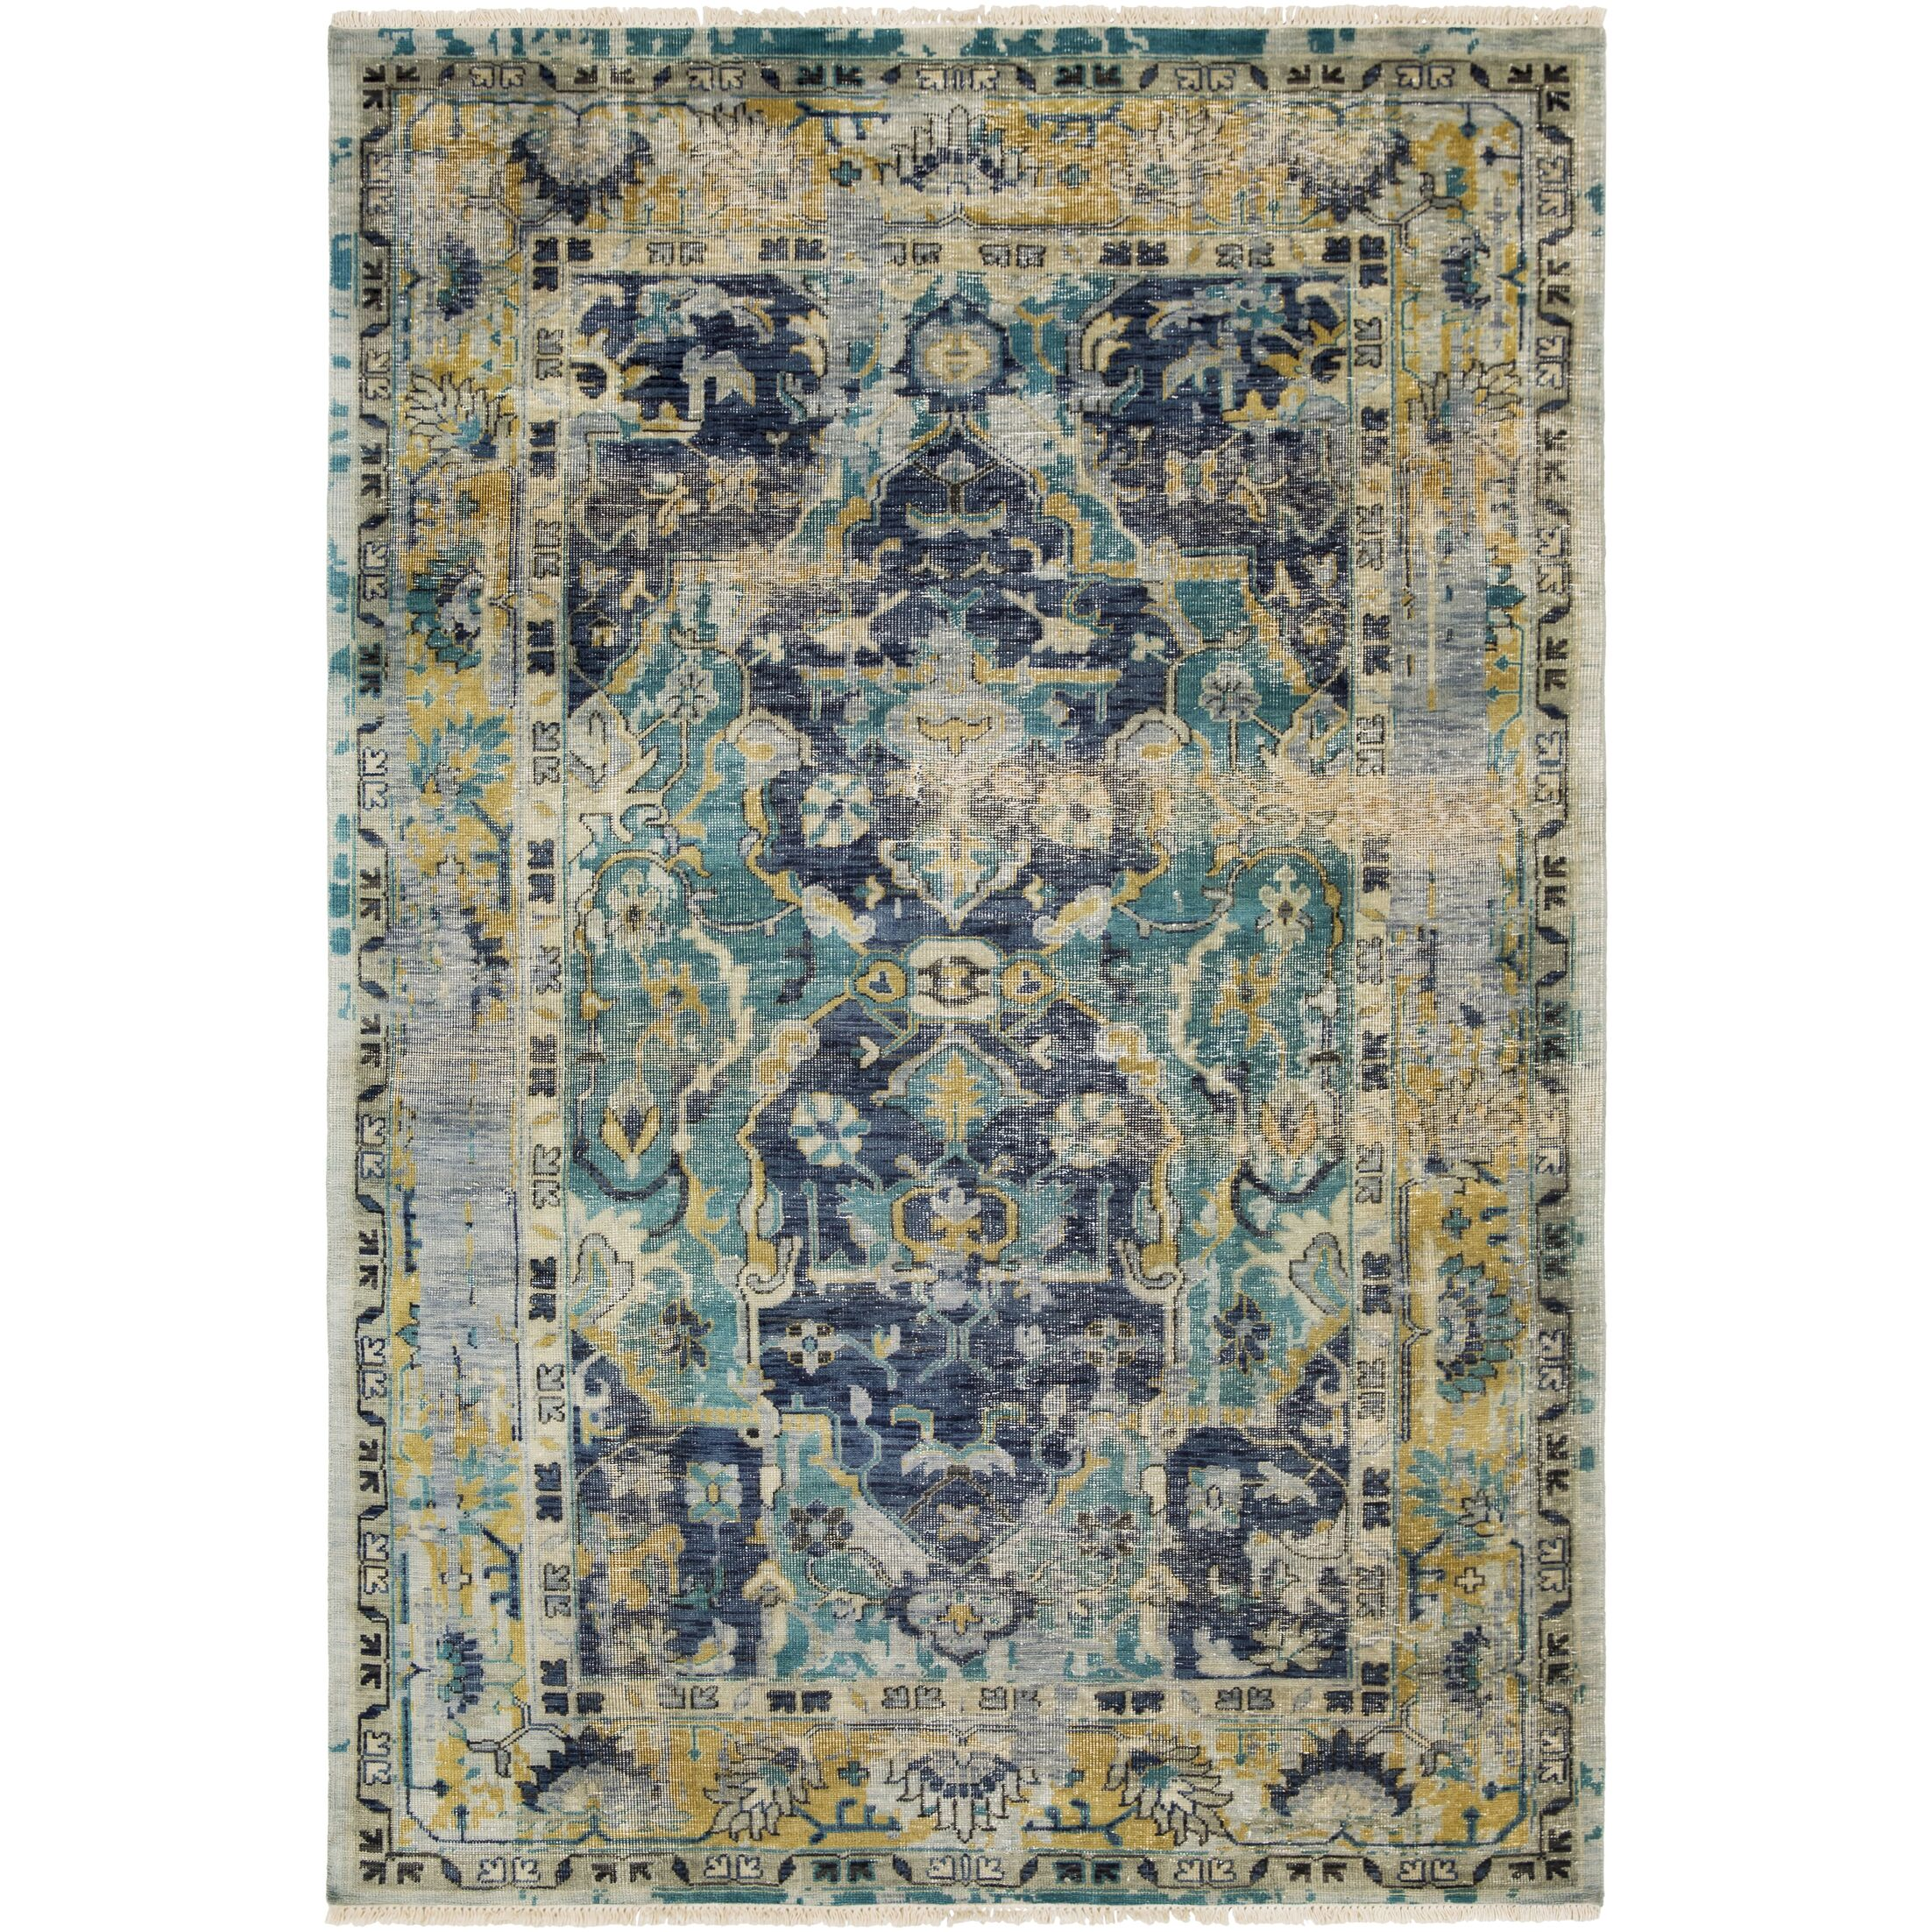 Makenna Hand-Knotted Navy/Teal Area Rug Rug Size: Rectangle 6' x 9'